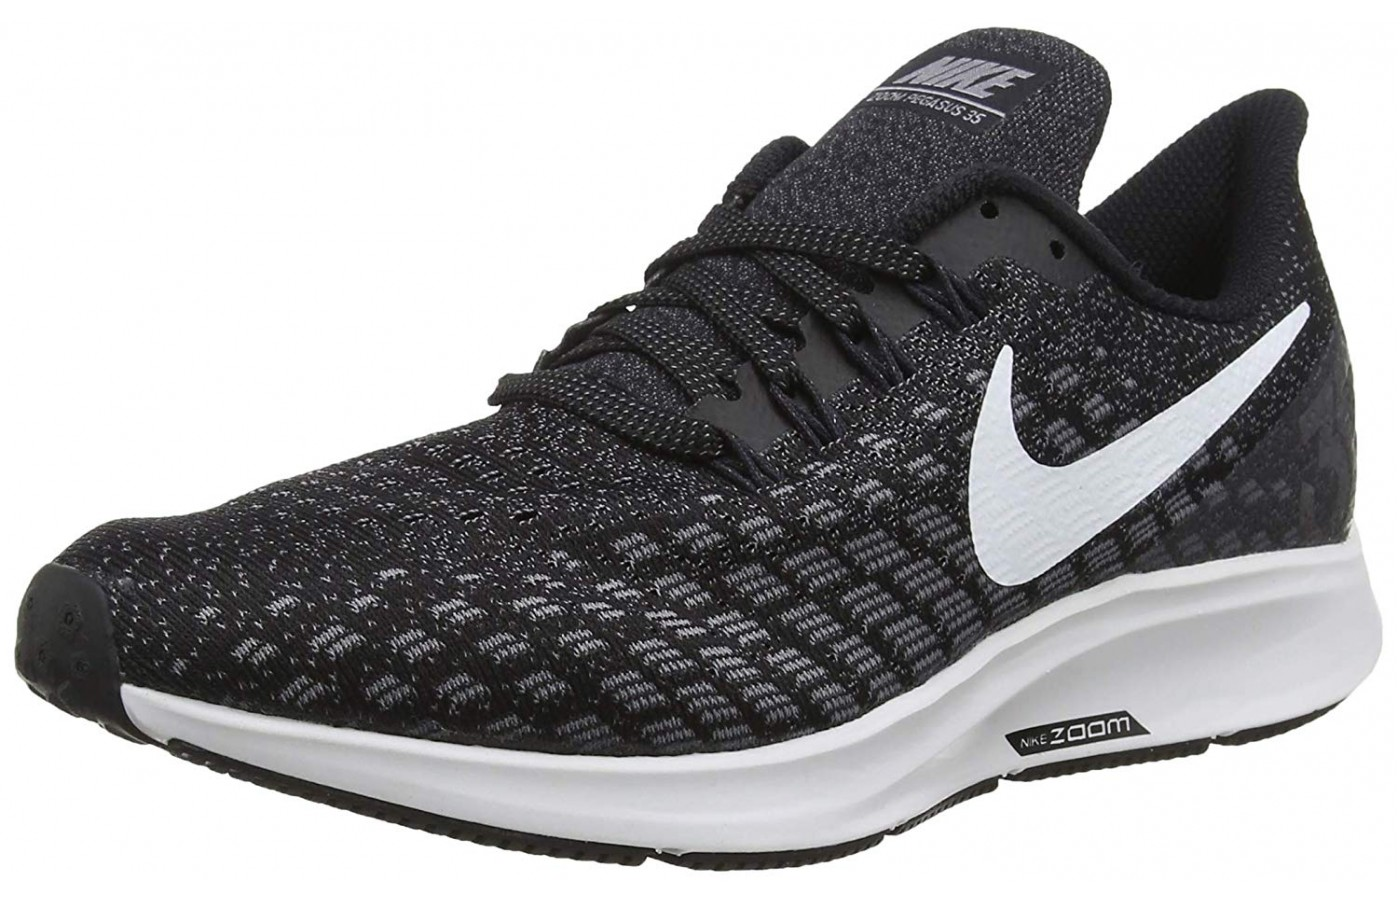 The Nike Air Zoom Pegasus hardsole is known to be very durable.